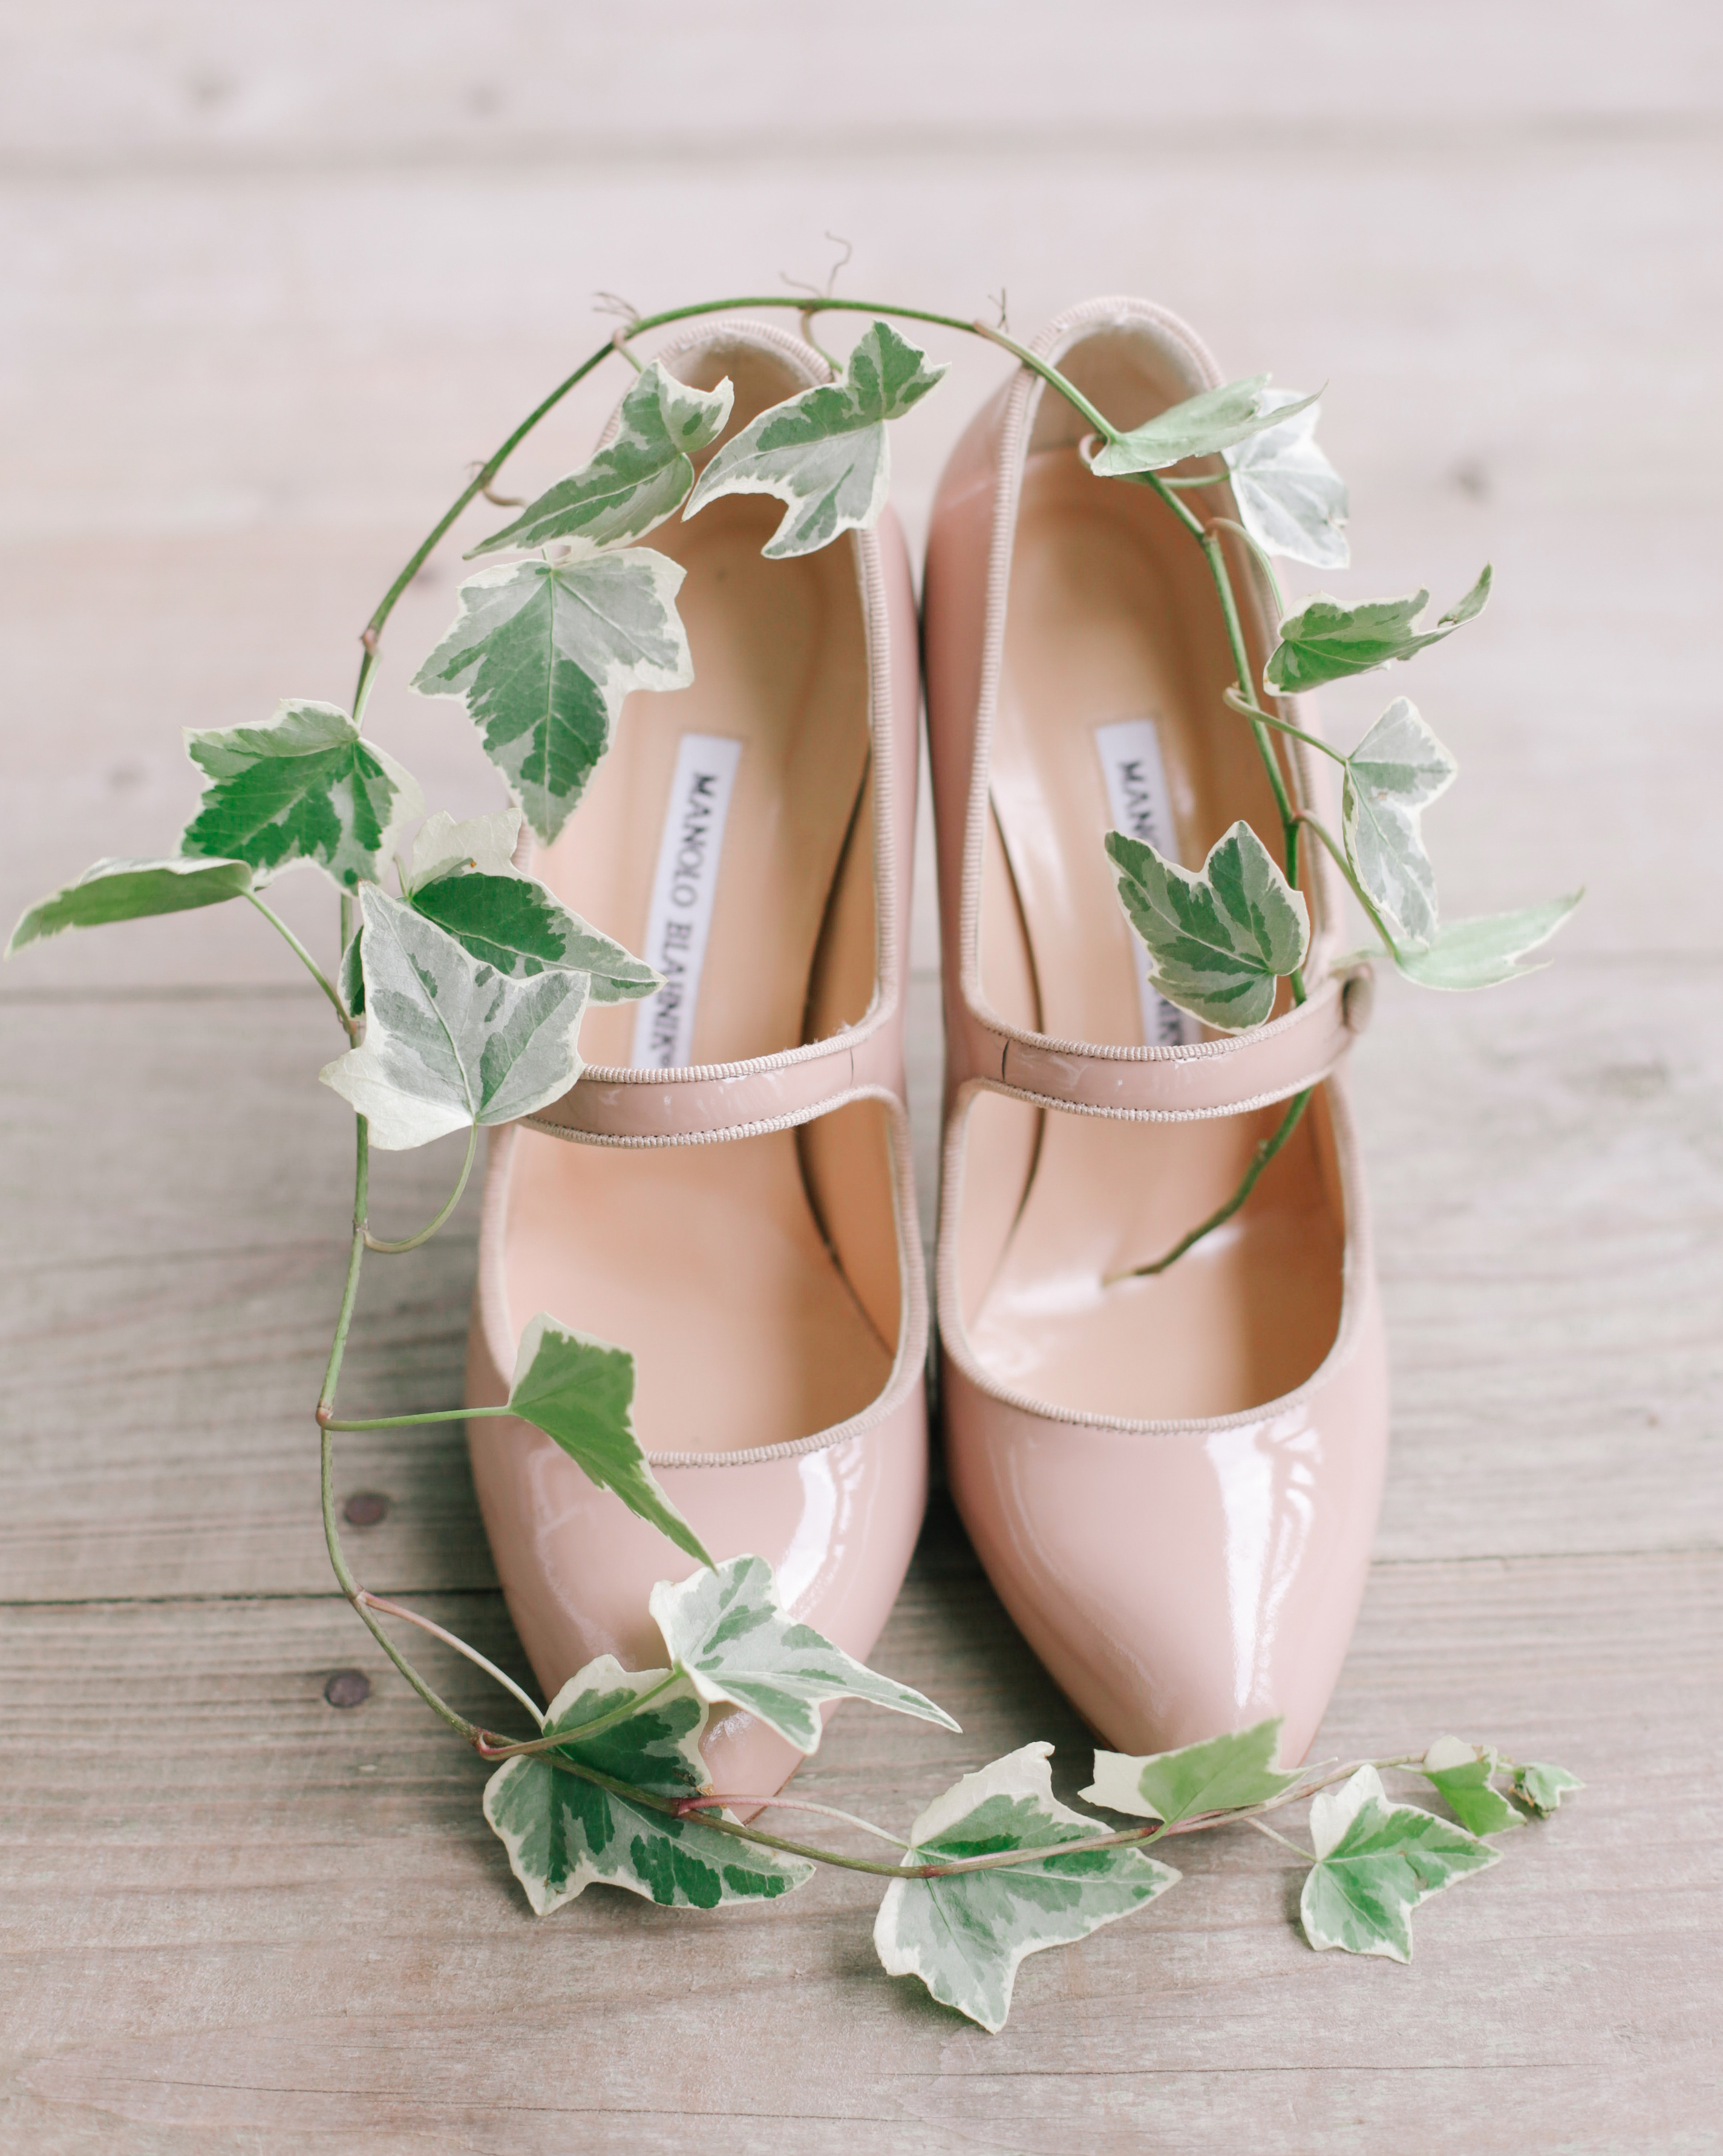 destiny-taylor-wedding-shoes-15-s112347-1115.jpg